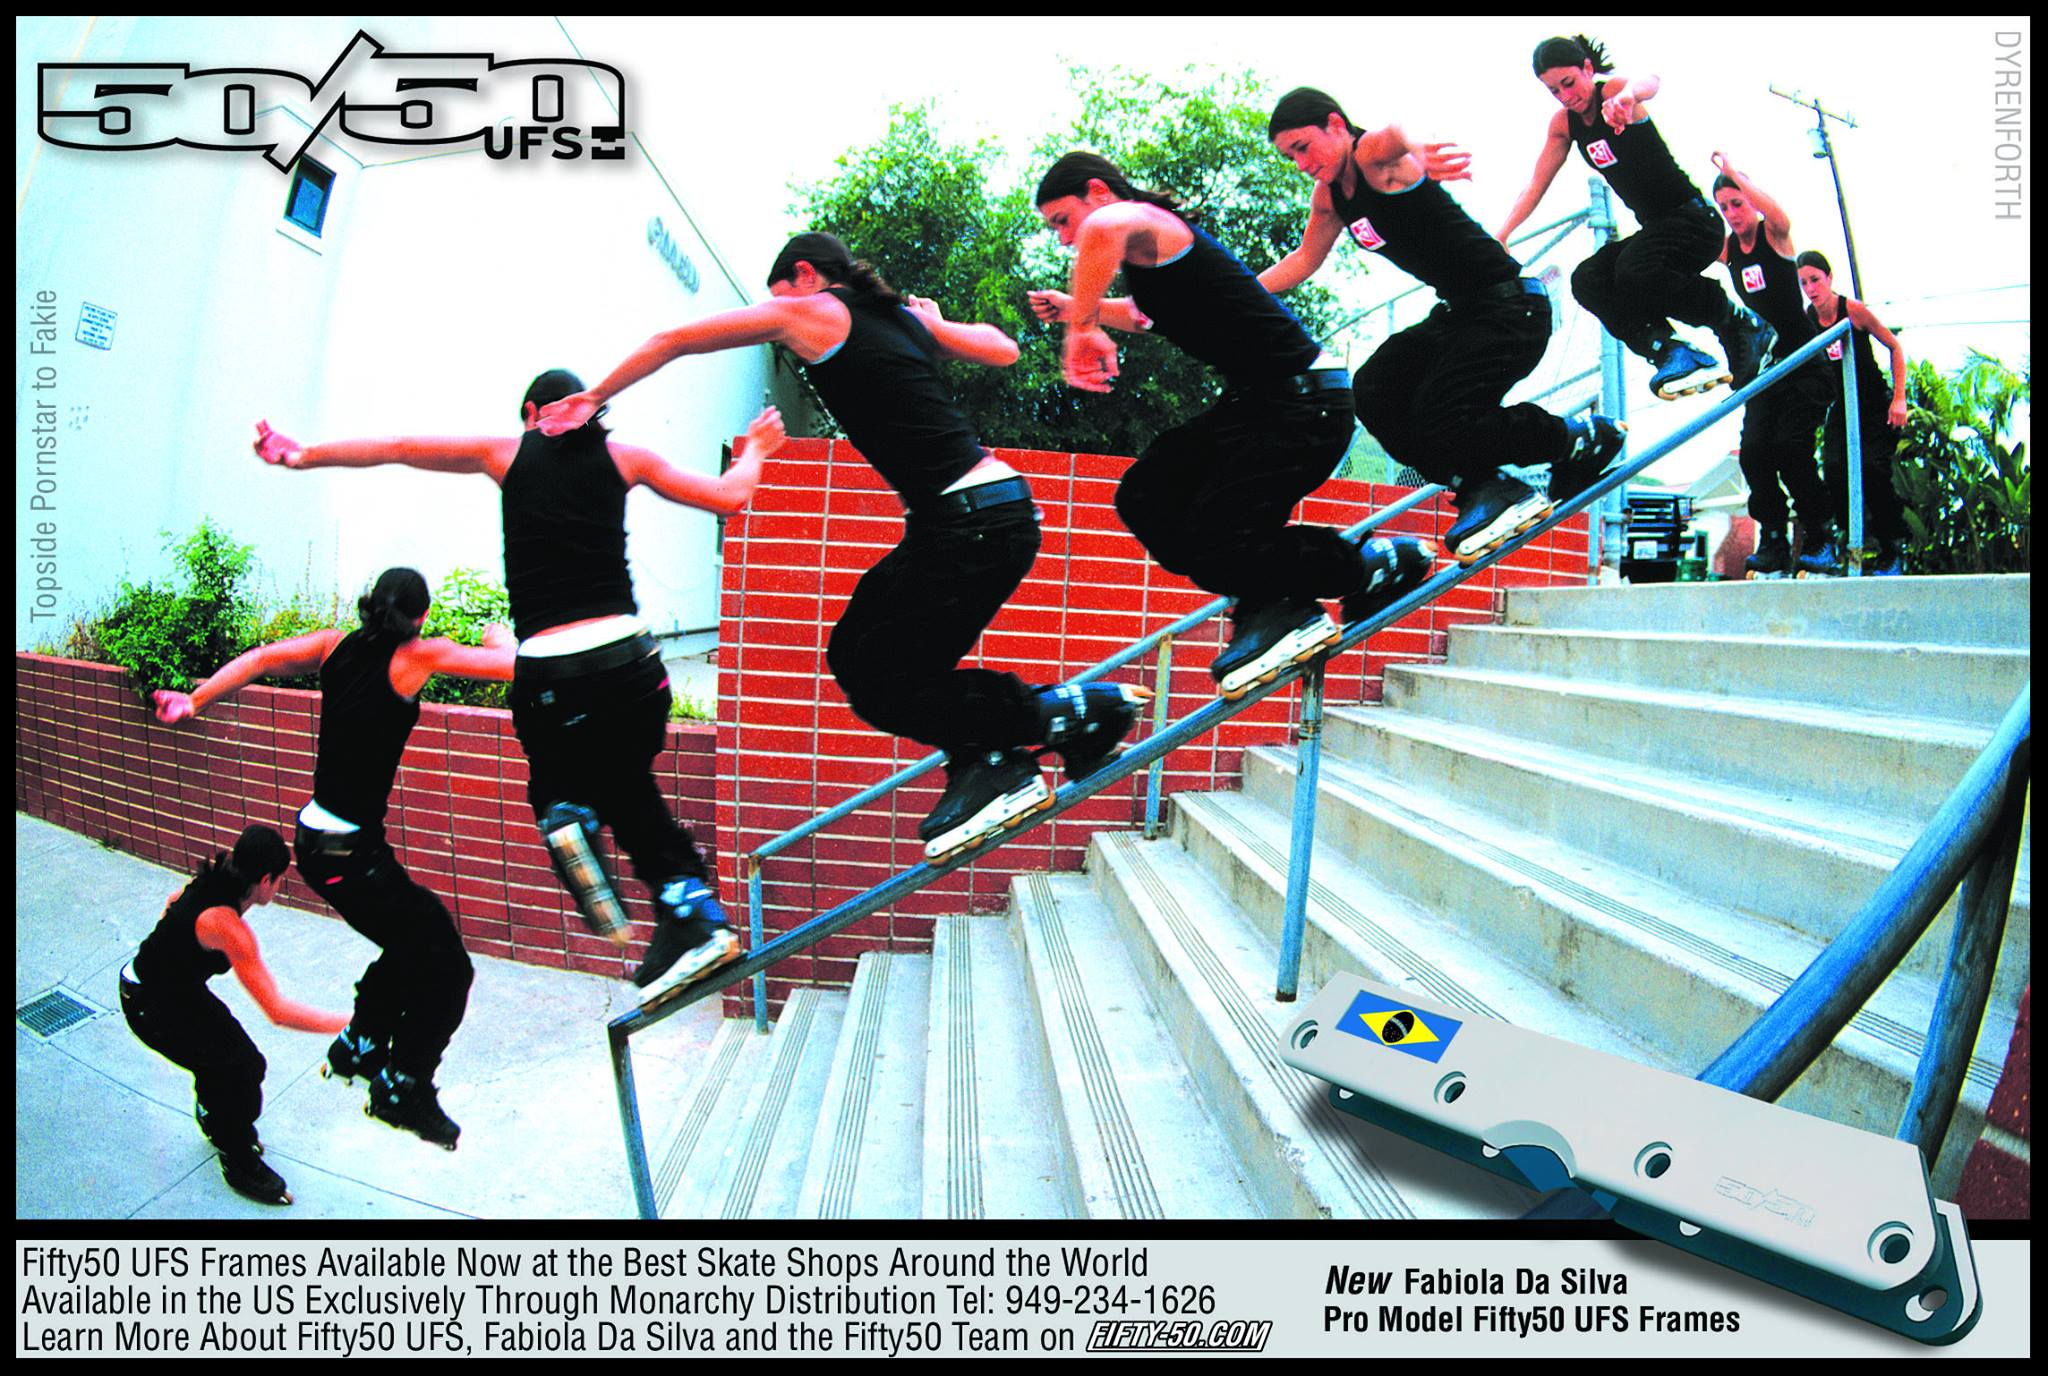 Fabiola Dasilva had one of the first pro model 50/50 UFS frames, shown in this ad from June 2001.